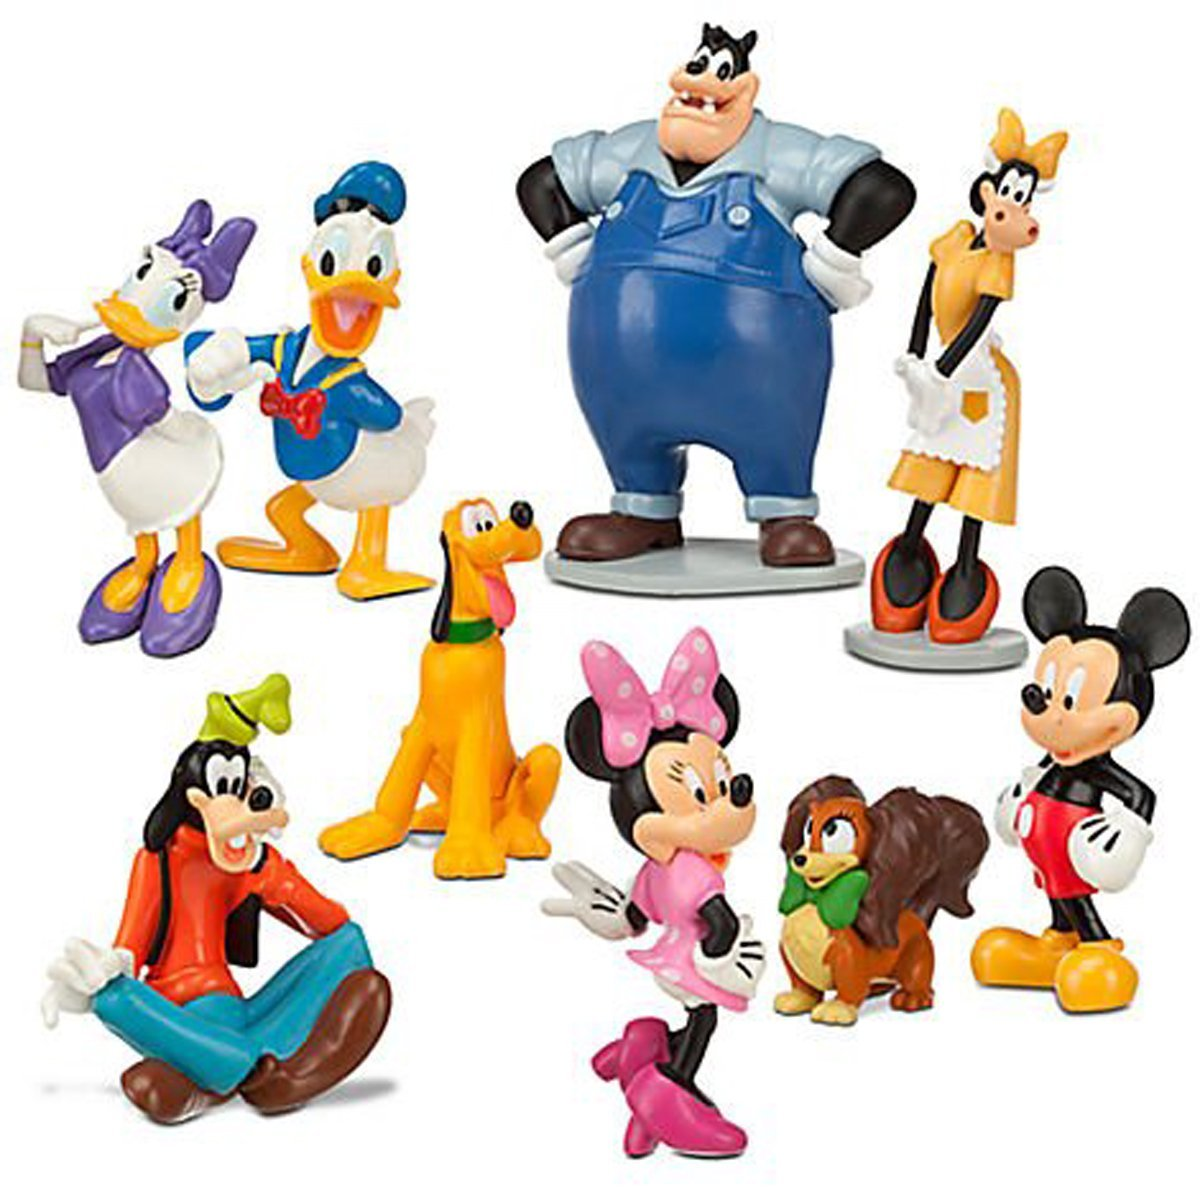 1200x1200 Disney Mickey Mouse Clubhouse Figurine Deluxe Figure